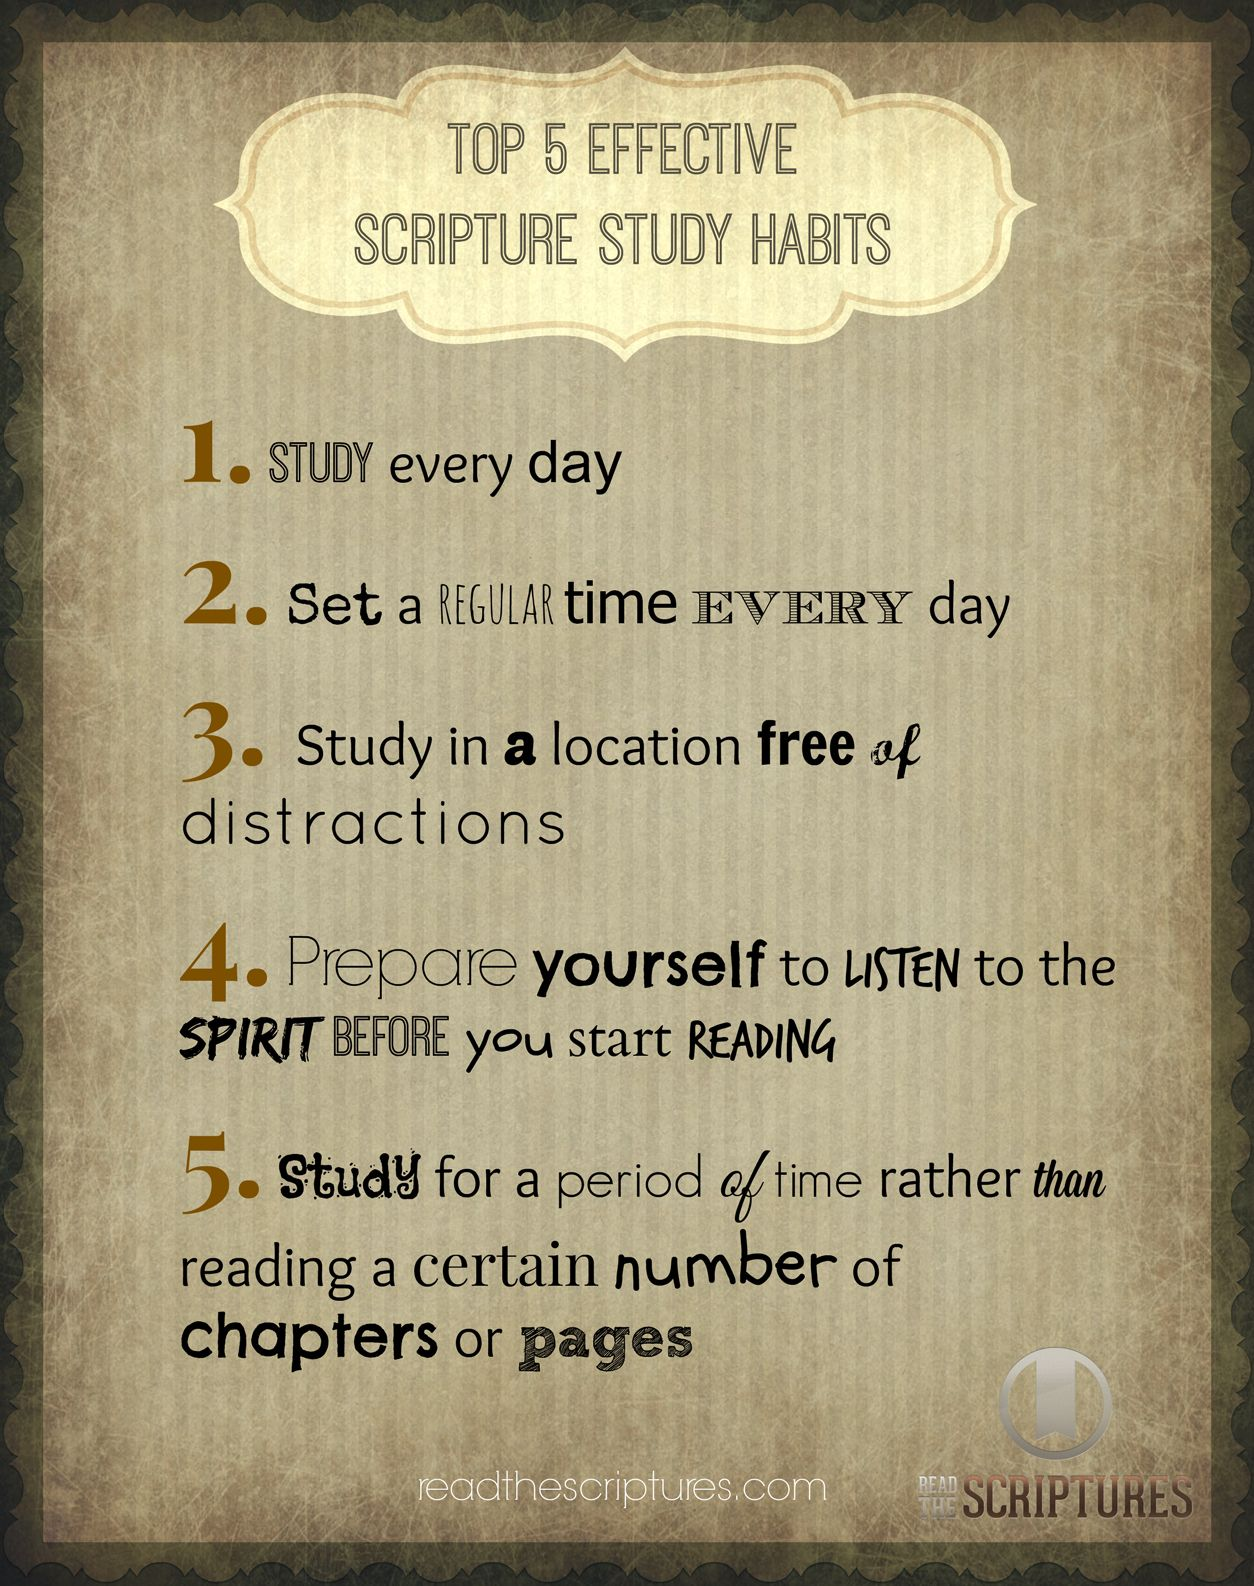 5 Effective Scripture Study Habits. CLICK to see how Read the Scriptures can help you with your scripture study! readthescriptures.com #lds #scriptures #bookofmormon